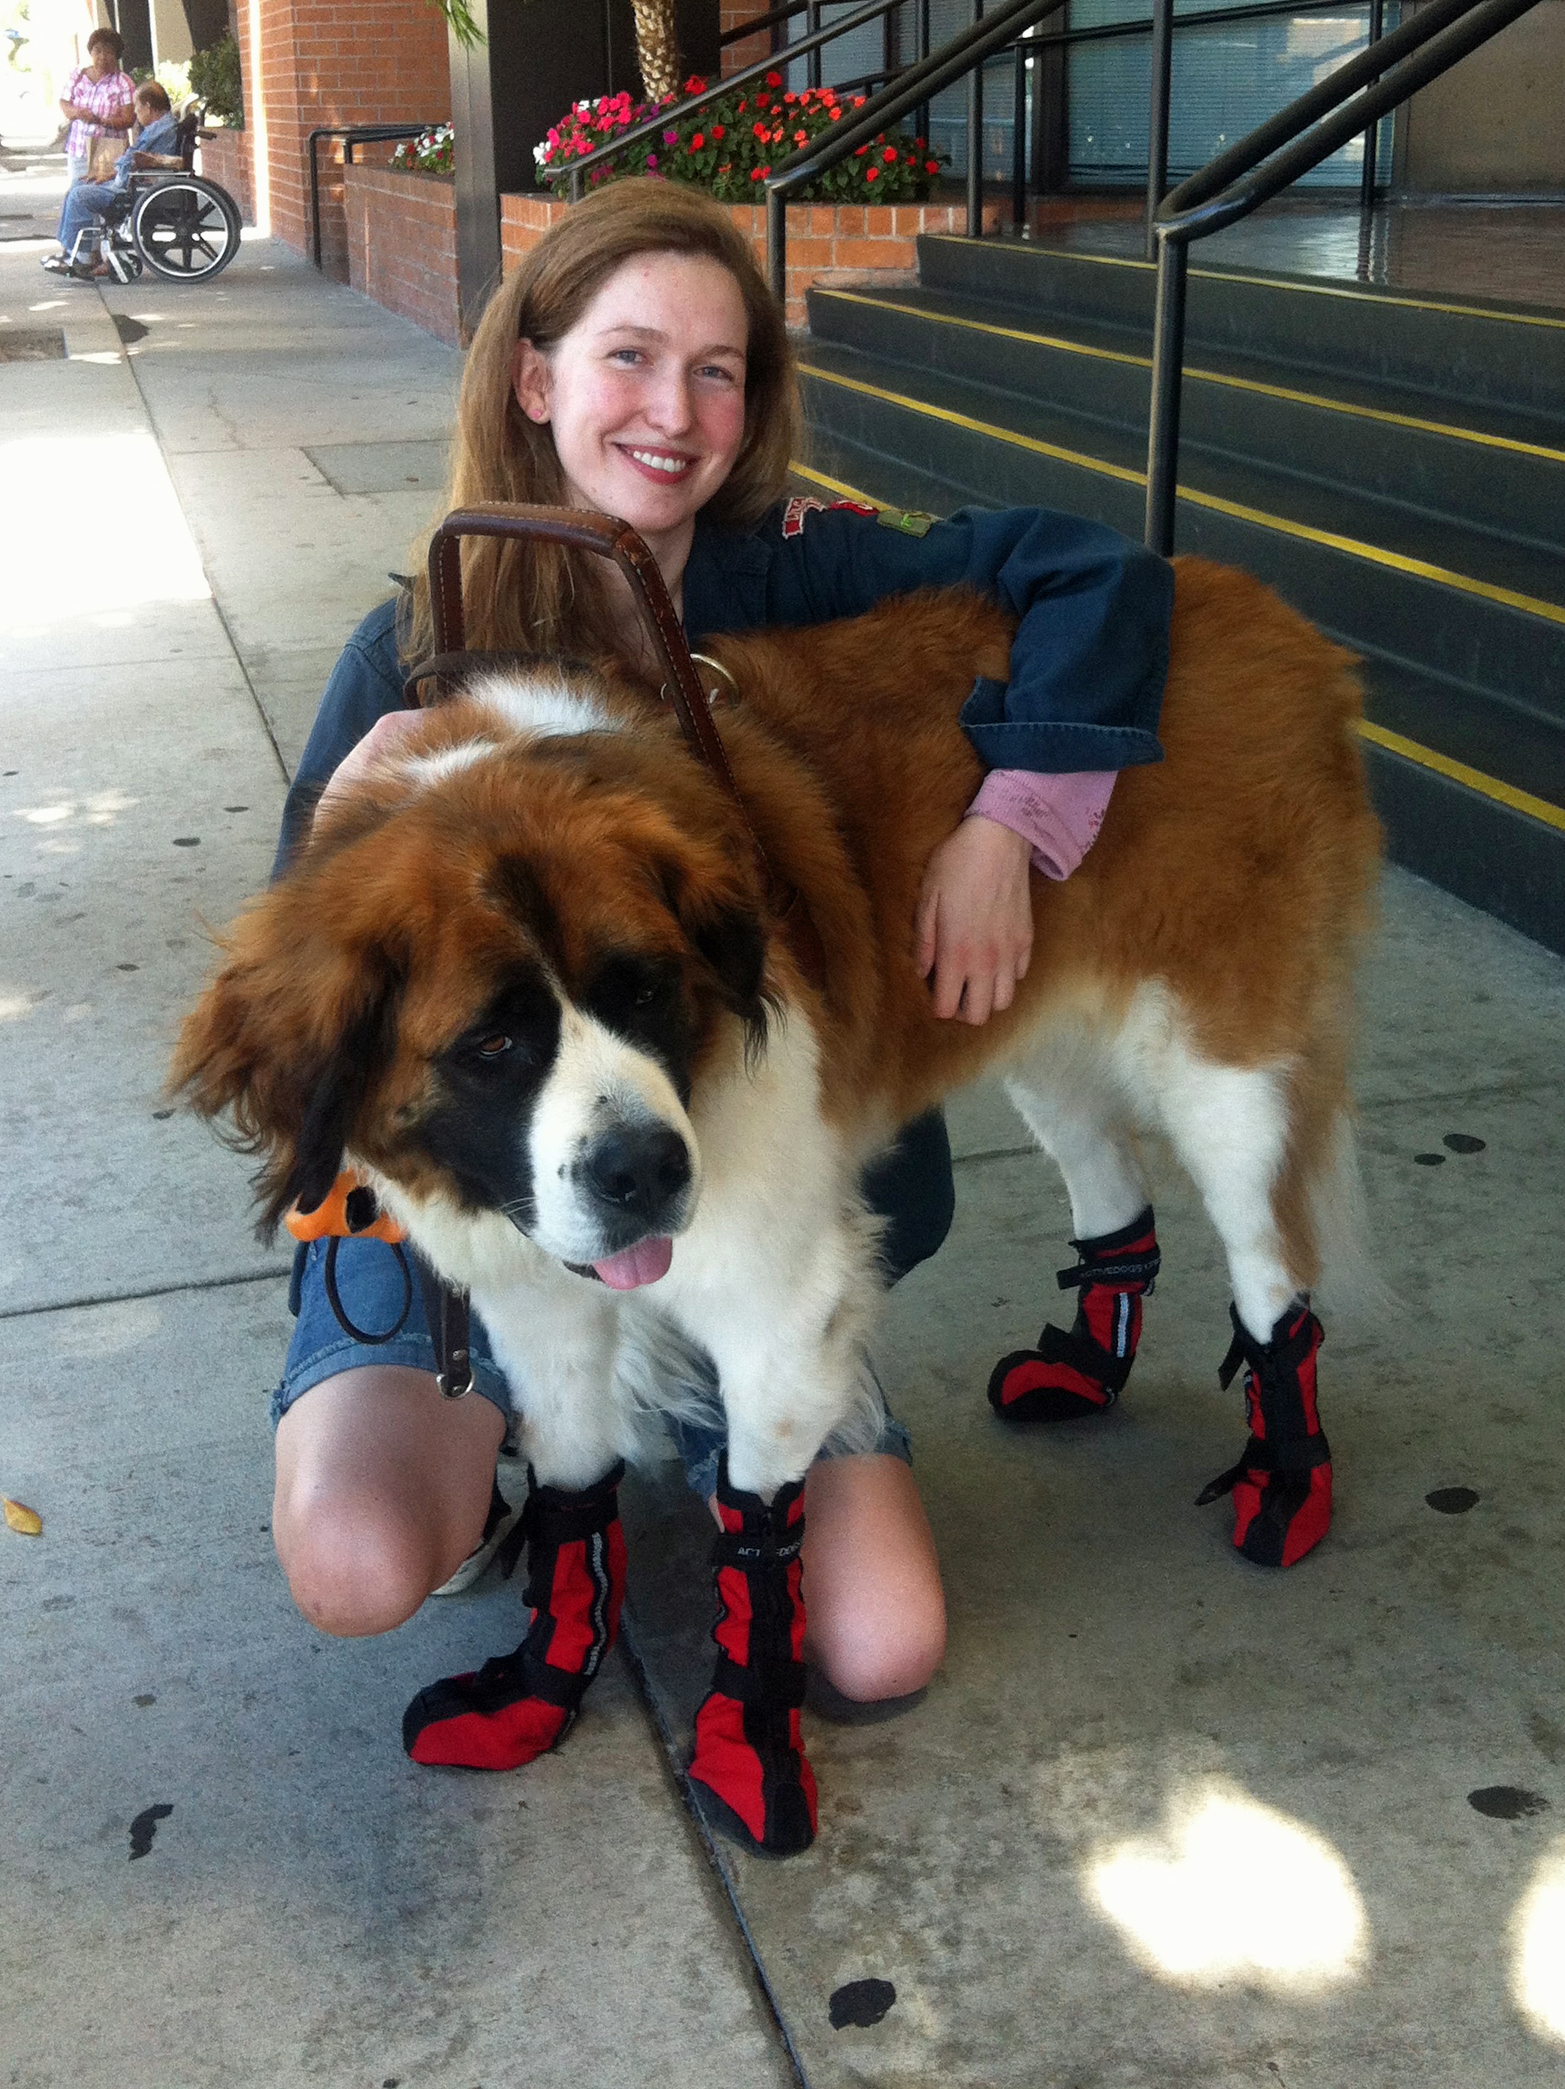 Four-Legged Impostors Give Service Dog Owners Pause